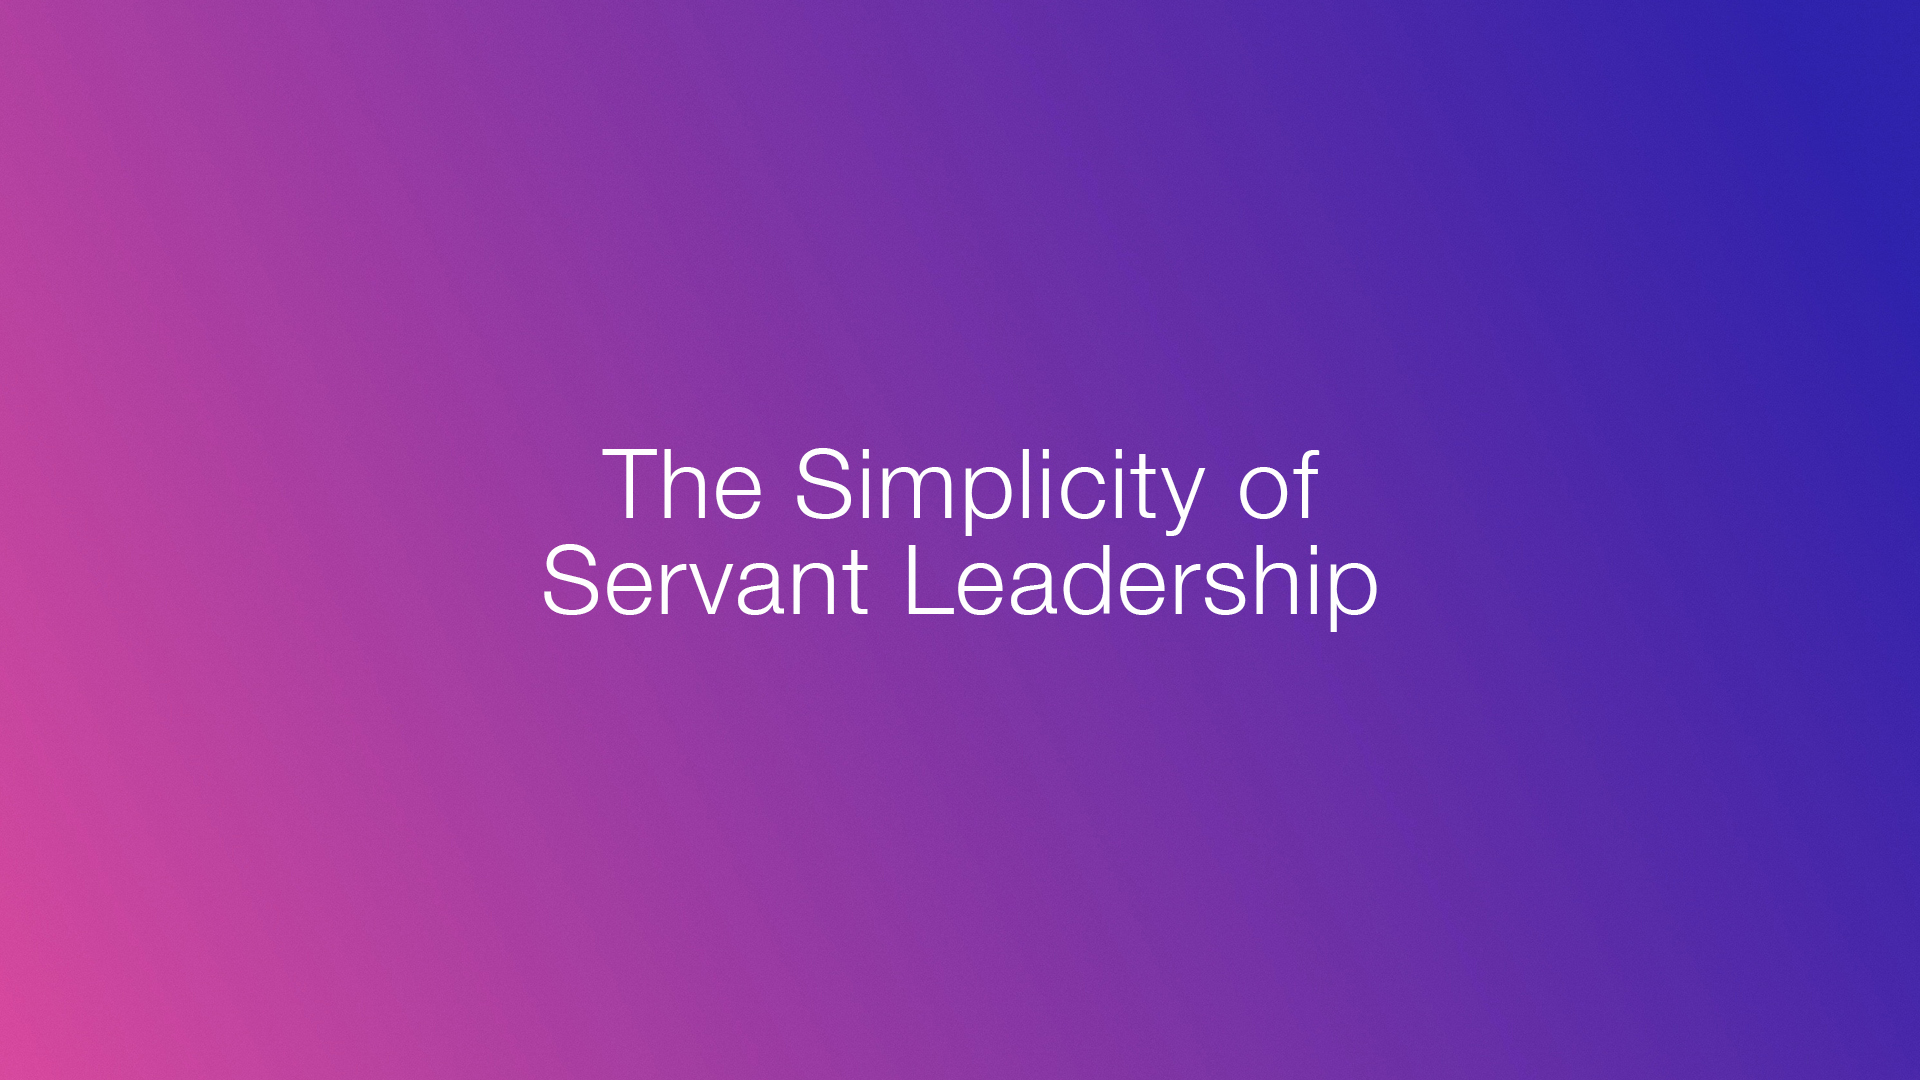 The Simplicity of Servant Leadership 1920x1080.jpg